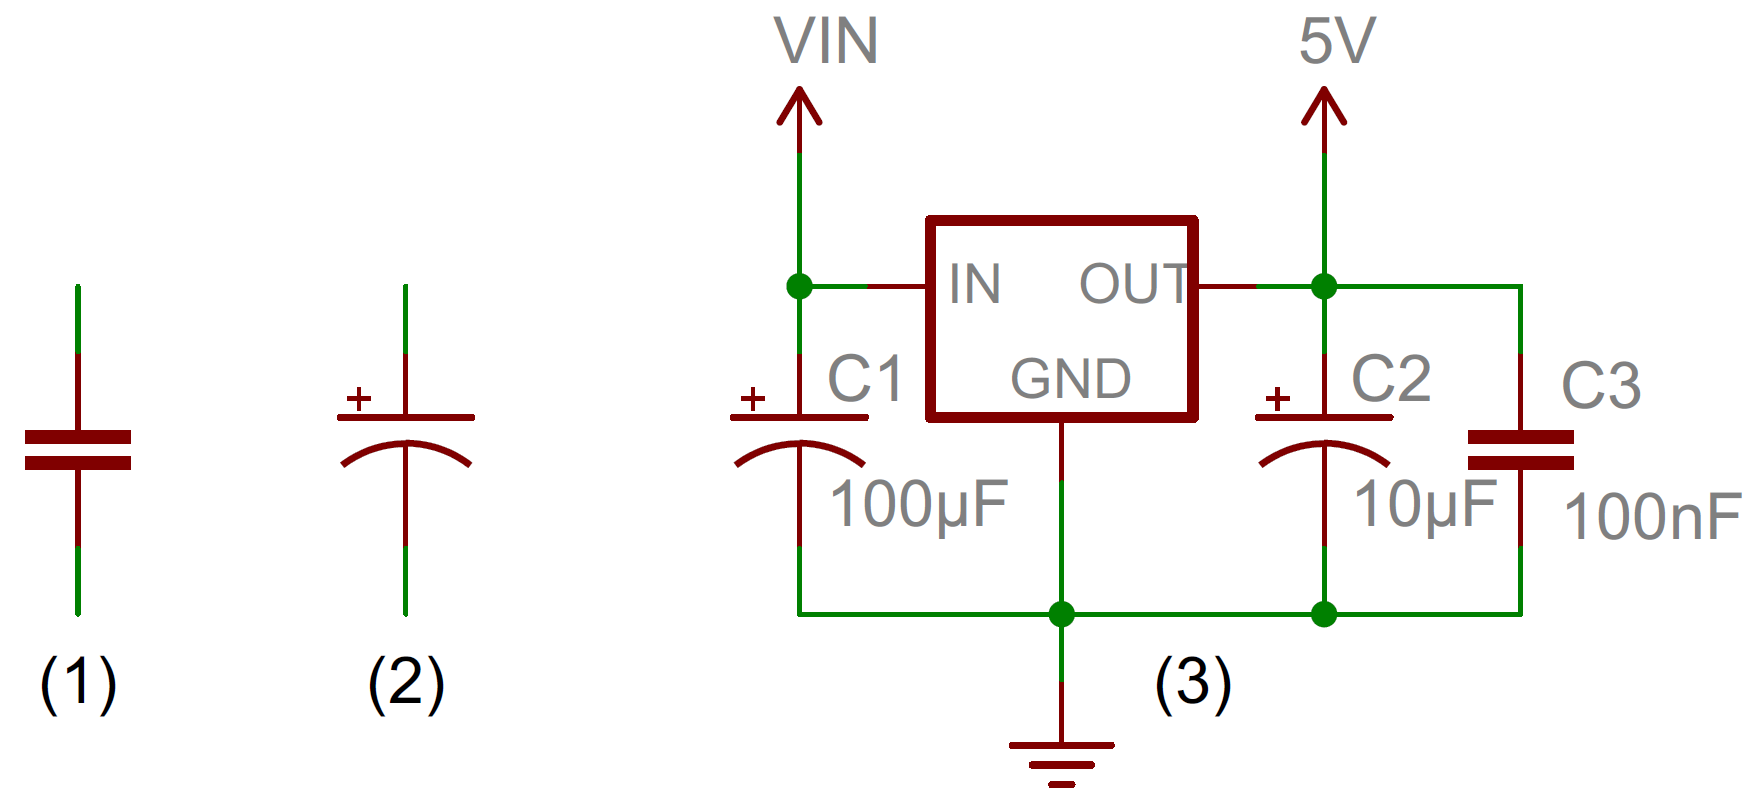 Capacitors Rectifier Circuit Diagram In Addition Diode Bridge Capacitor Symbols